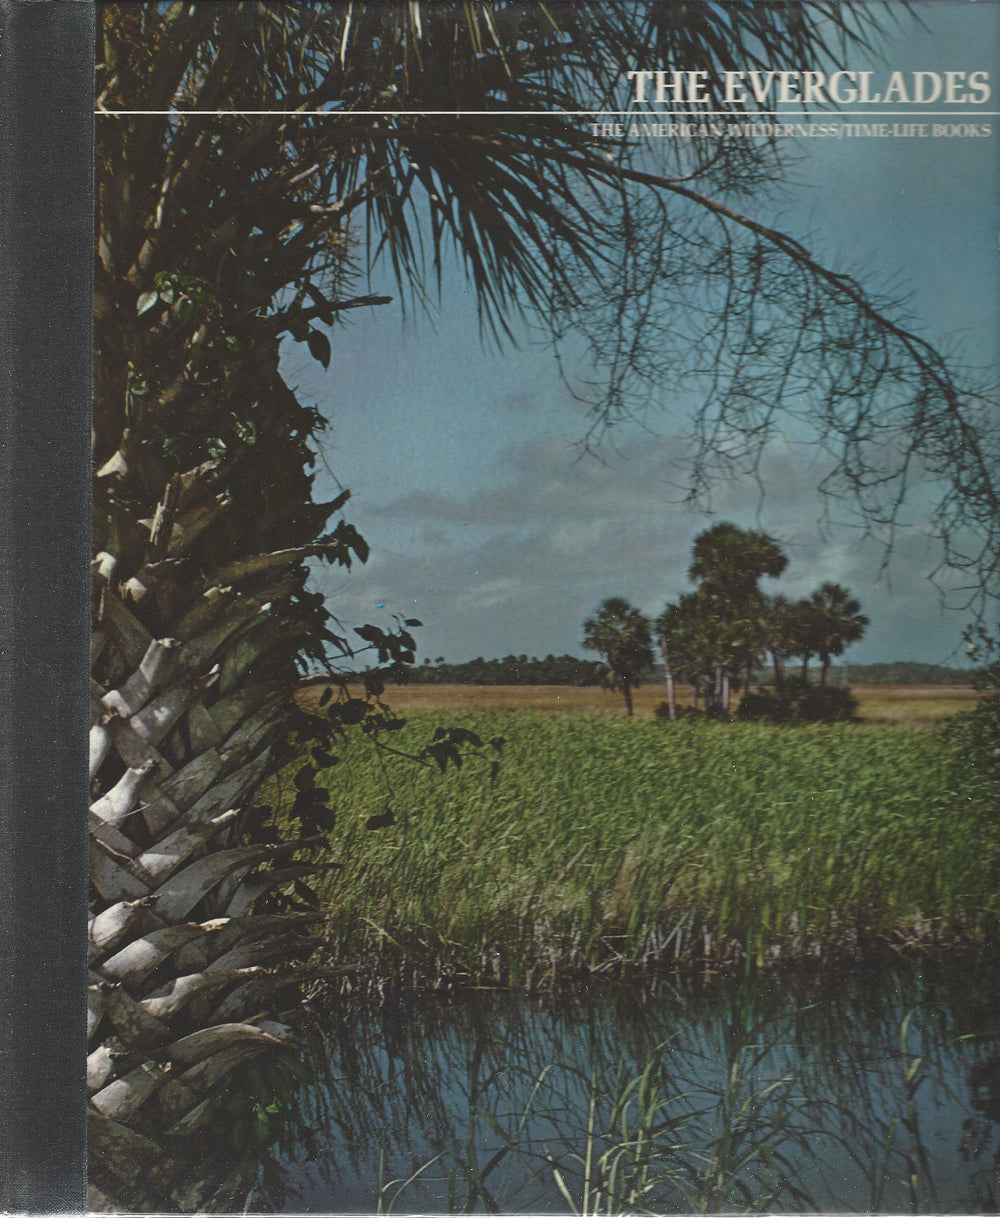 TIME-LIFE: The American Wilderness;  The Everglades by Archie Carr  (1973)